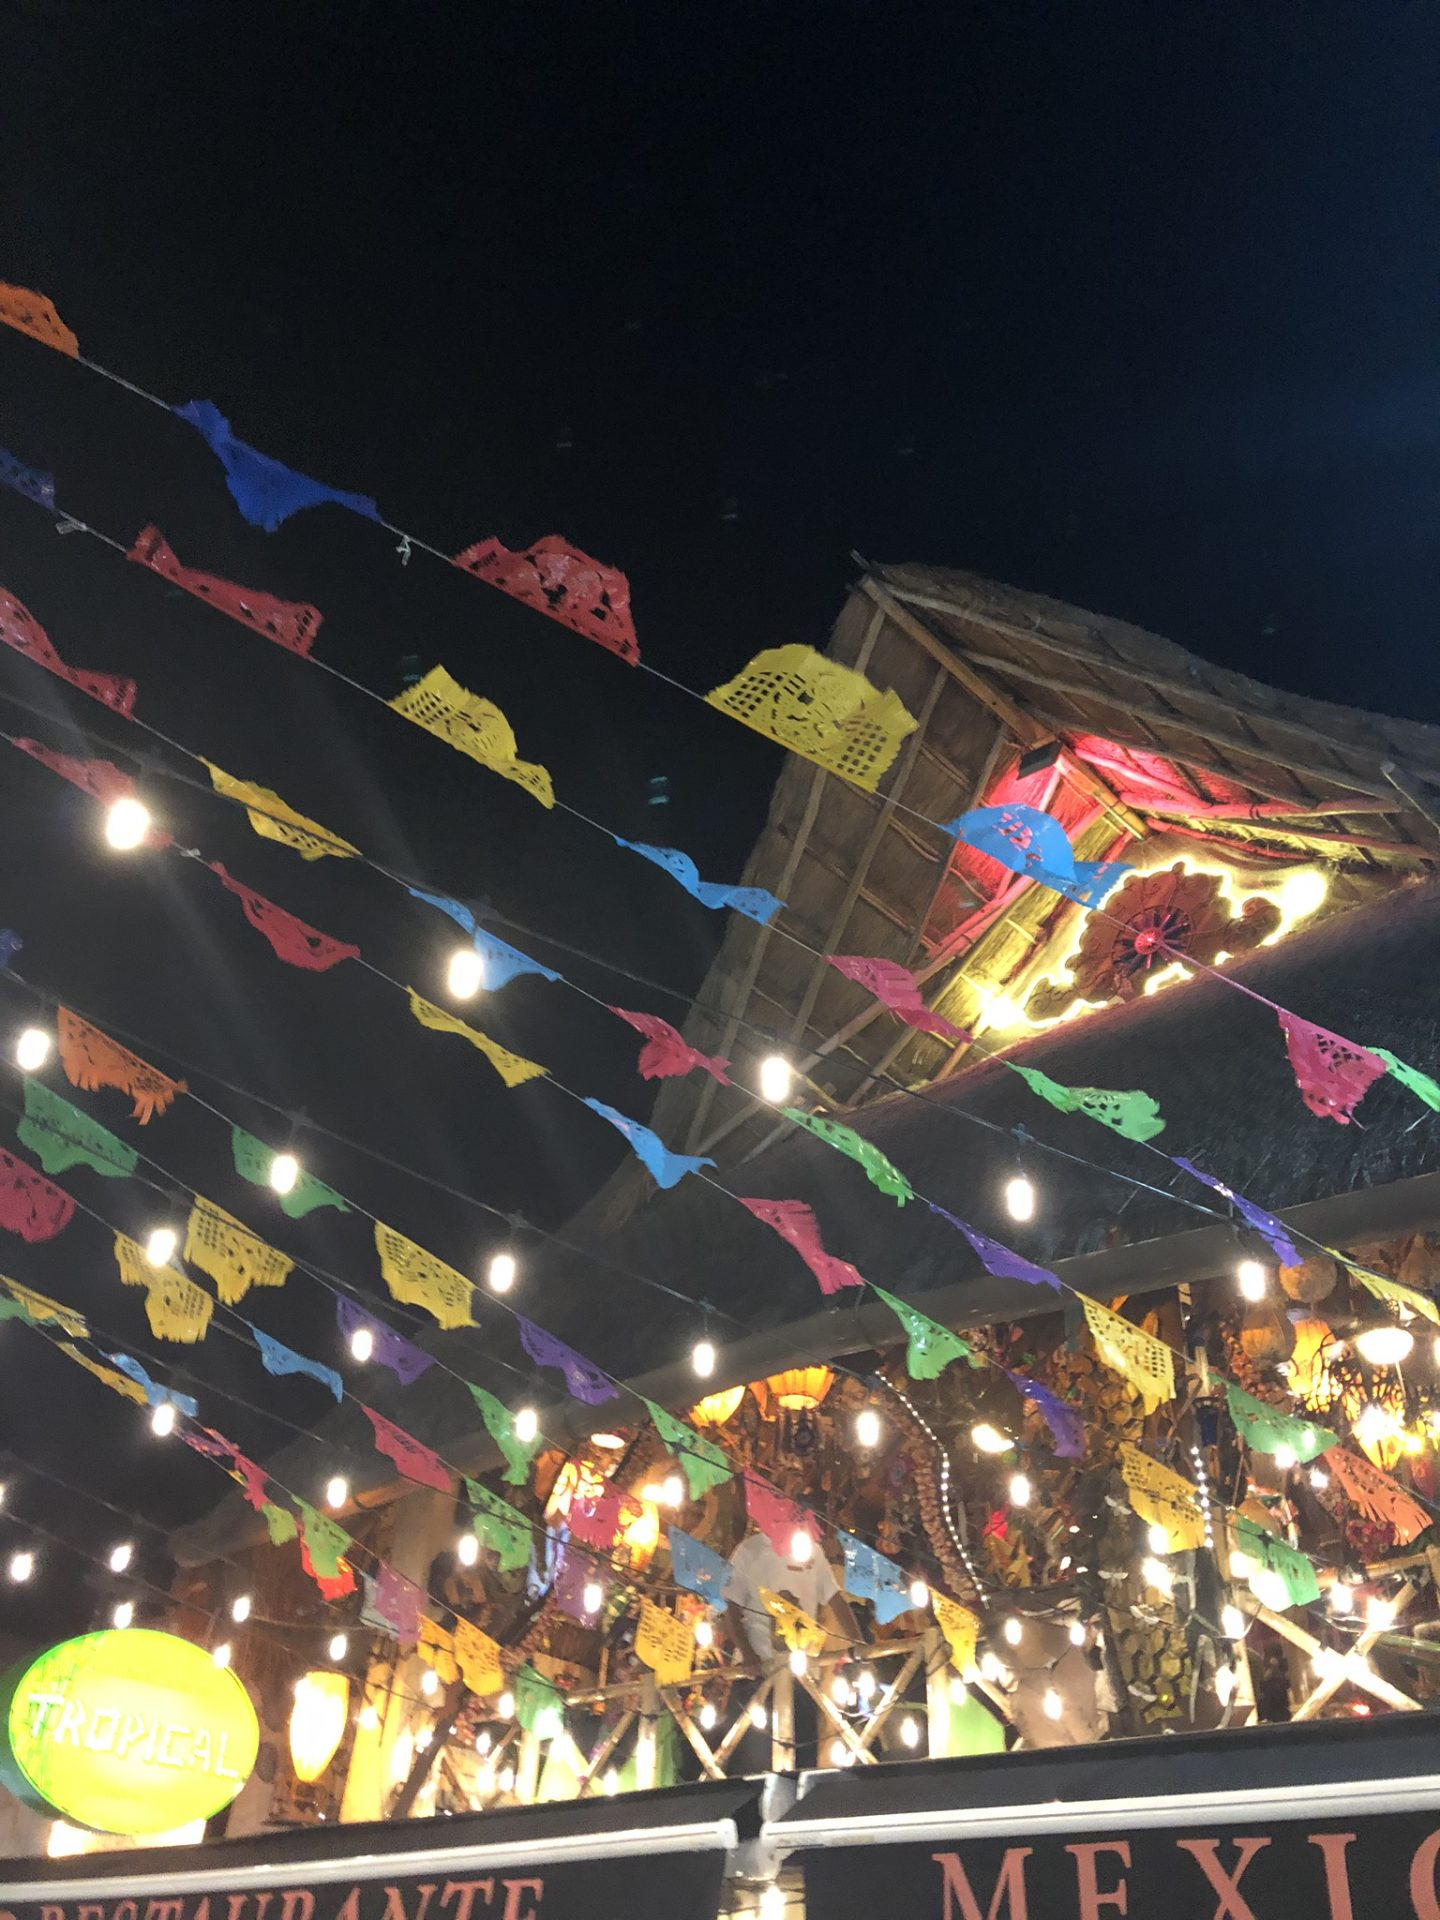 Mexican decorations in Playa del Carmen, Riviera Maya